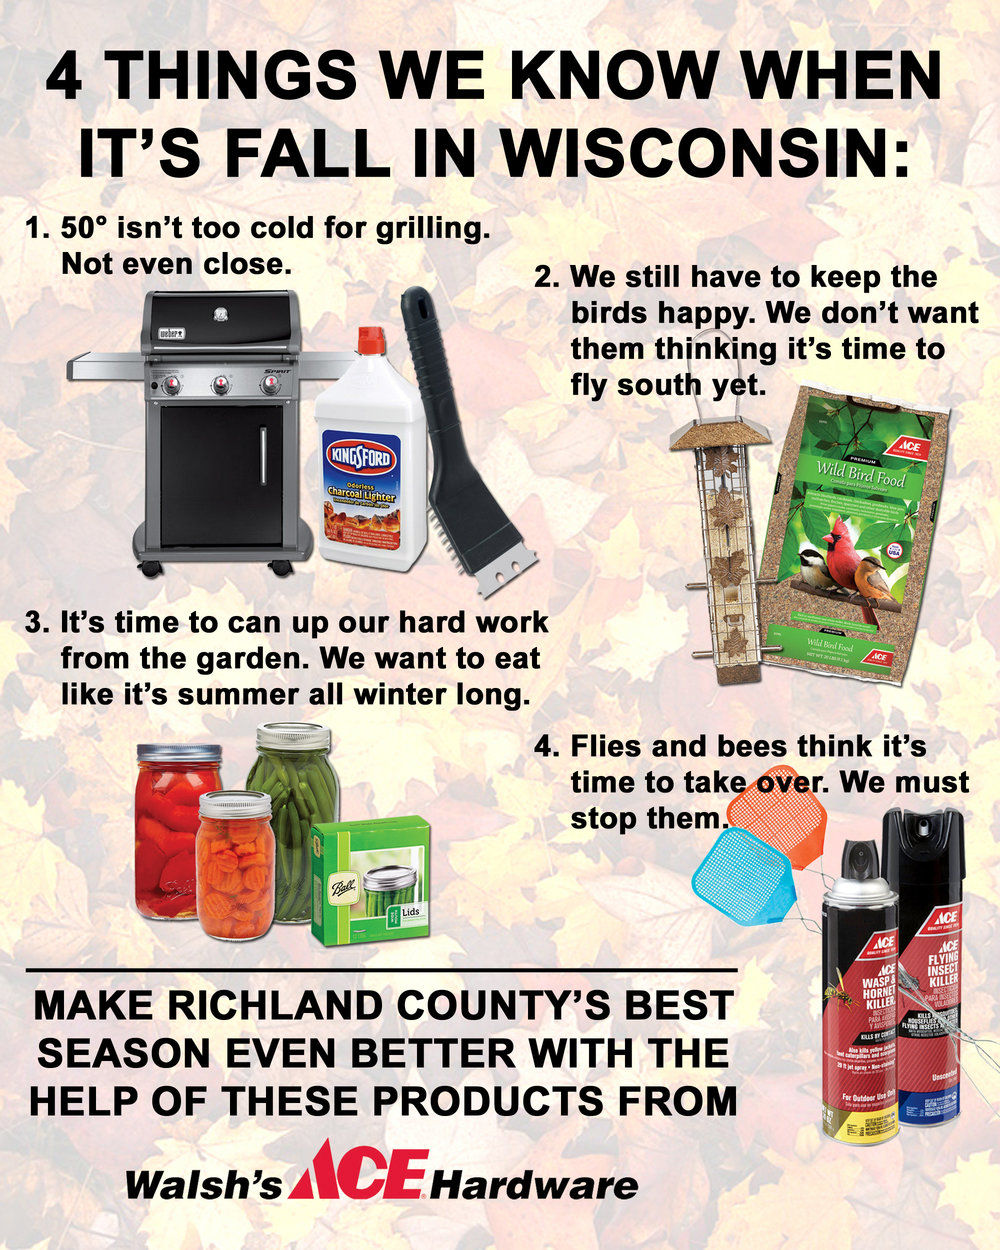 Fall in WI - RC.jpg